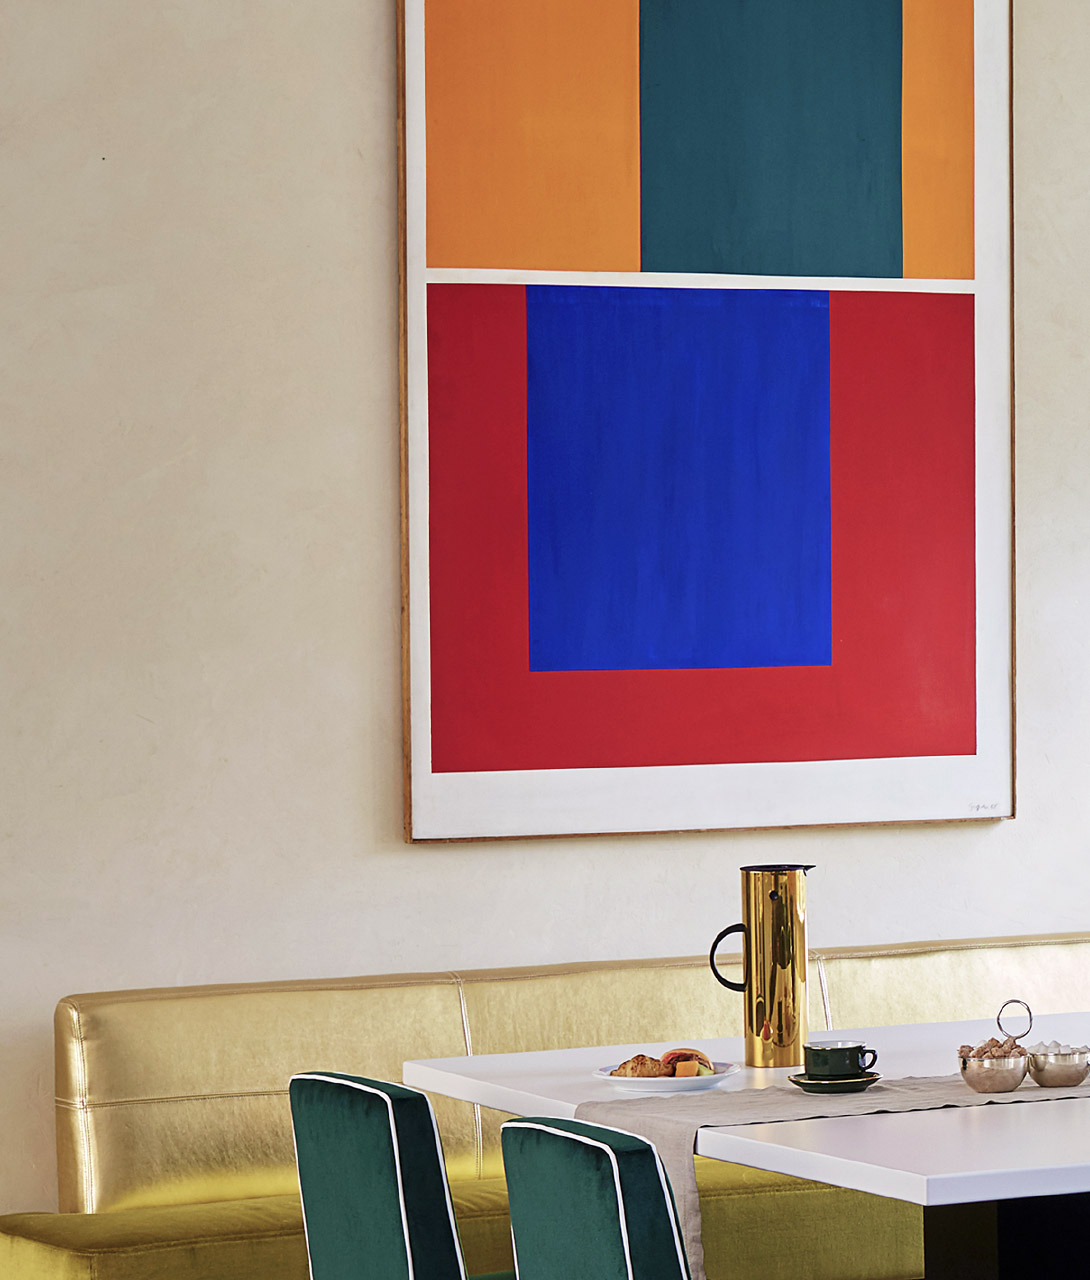 hotel-st-paul-restaurant-dining-table-painting-k-02-x2.jpg